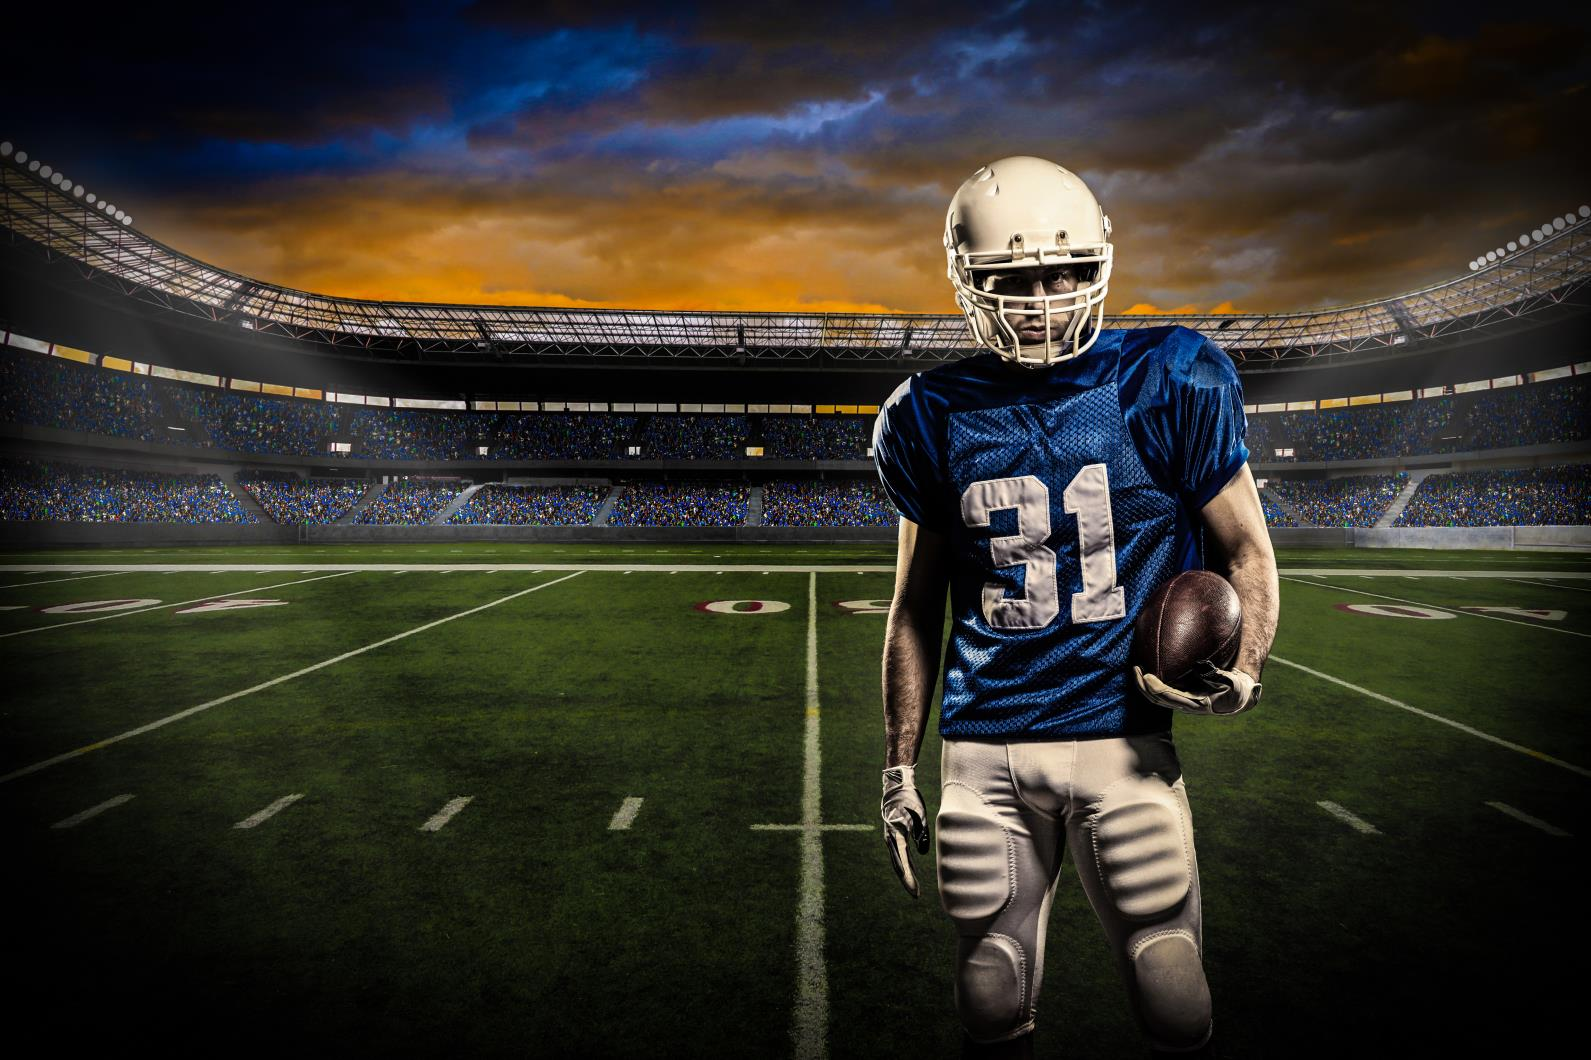 Free Soccer Wallpaper: American Football HD Wallpapers